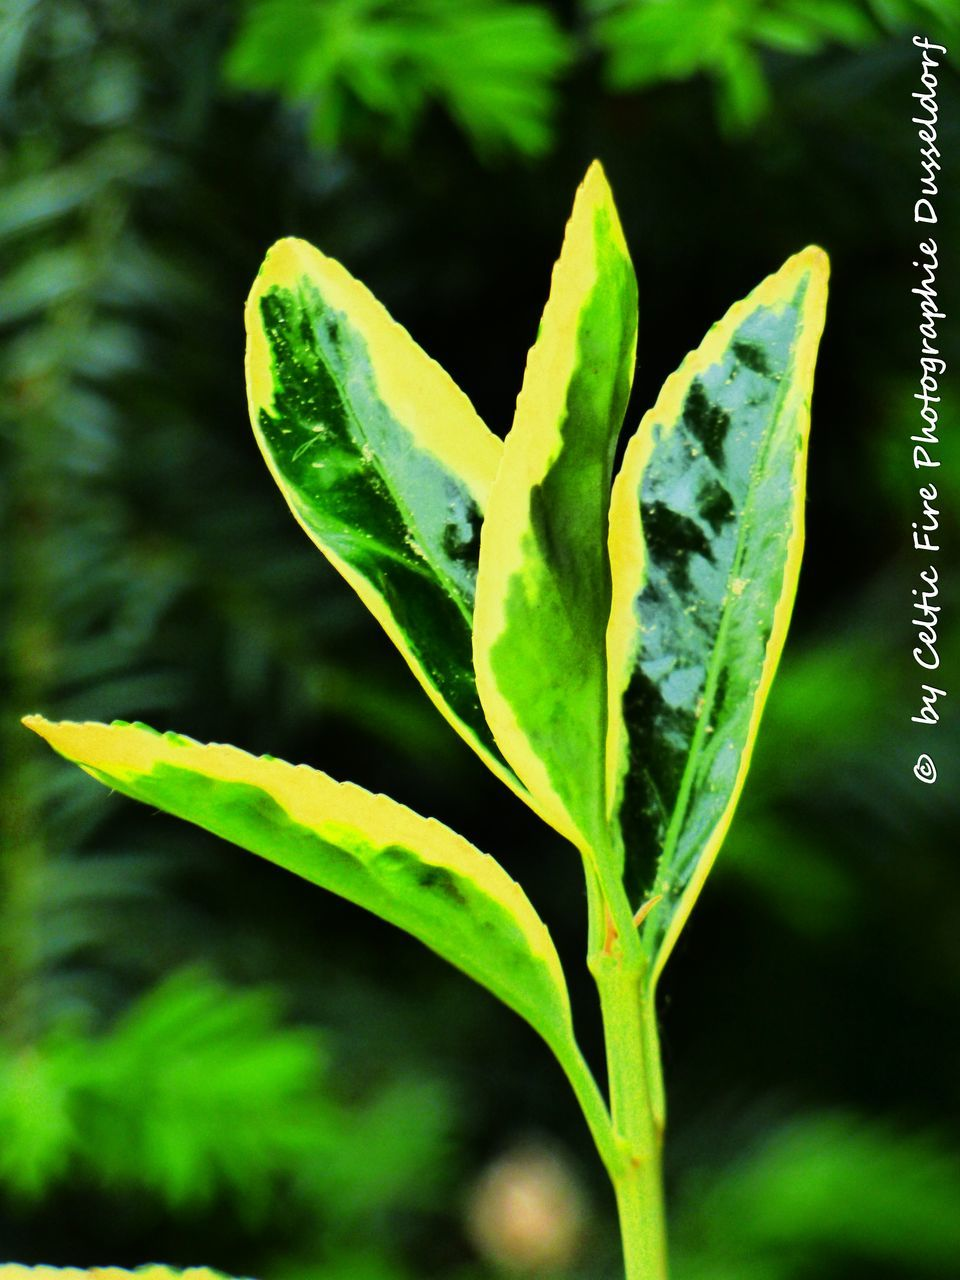 growth, green color, plant, nature, no people, leaf, close-up, day, outdoors, fragility, beauty in nature, freshness